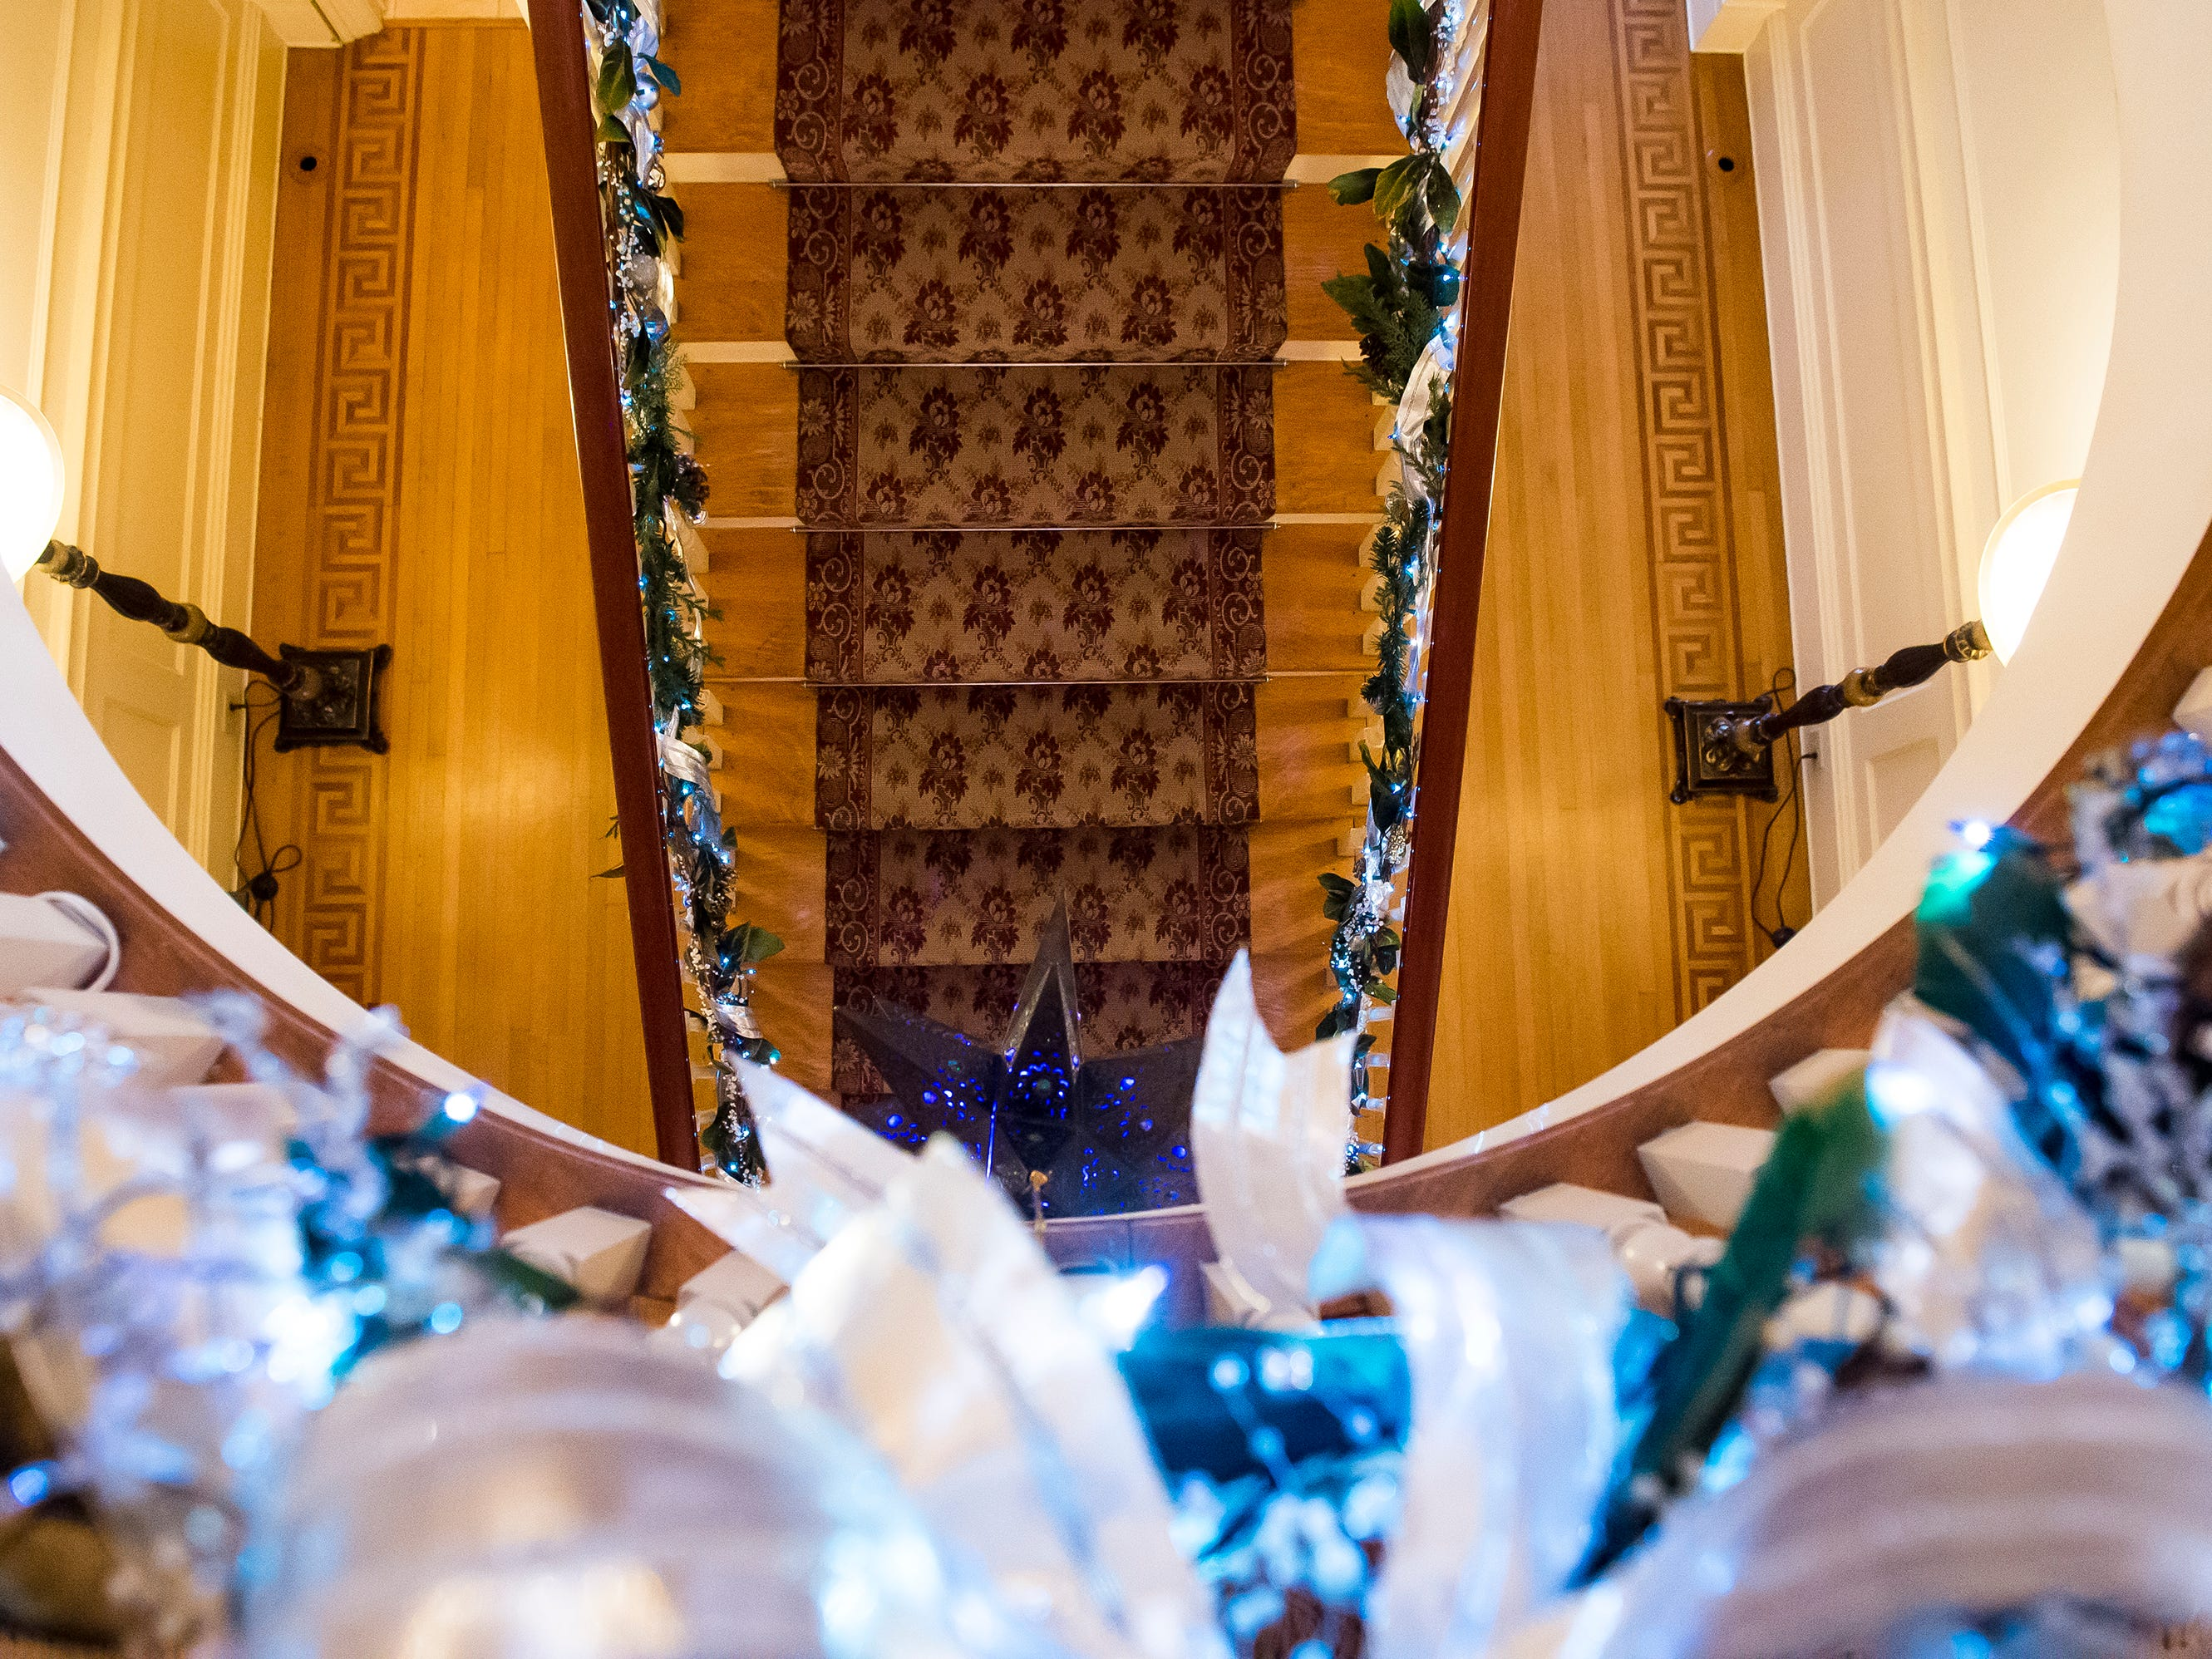 As seen from above, lights and holiday decorations adorn the railings of the grand staircase at the Warehime-Myers Mansion in Hanover. Tree tours are currently being offered and a schedule can be found on the Hanover Area Historical Society's Facebook page.